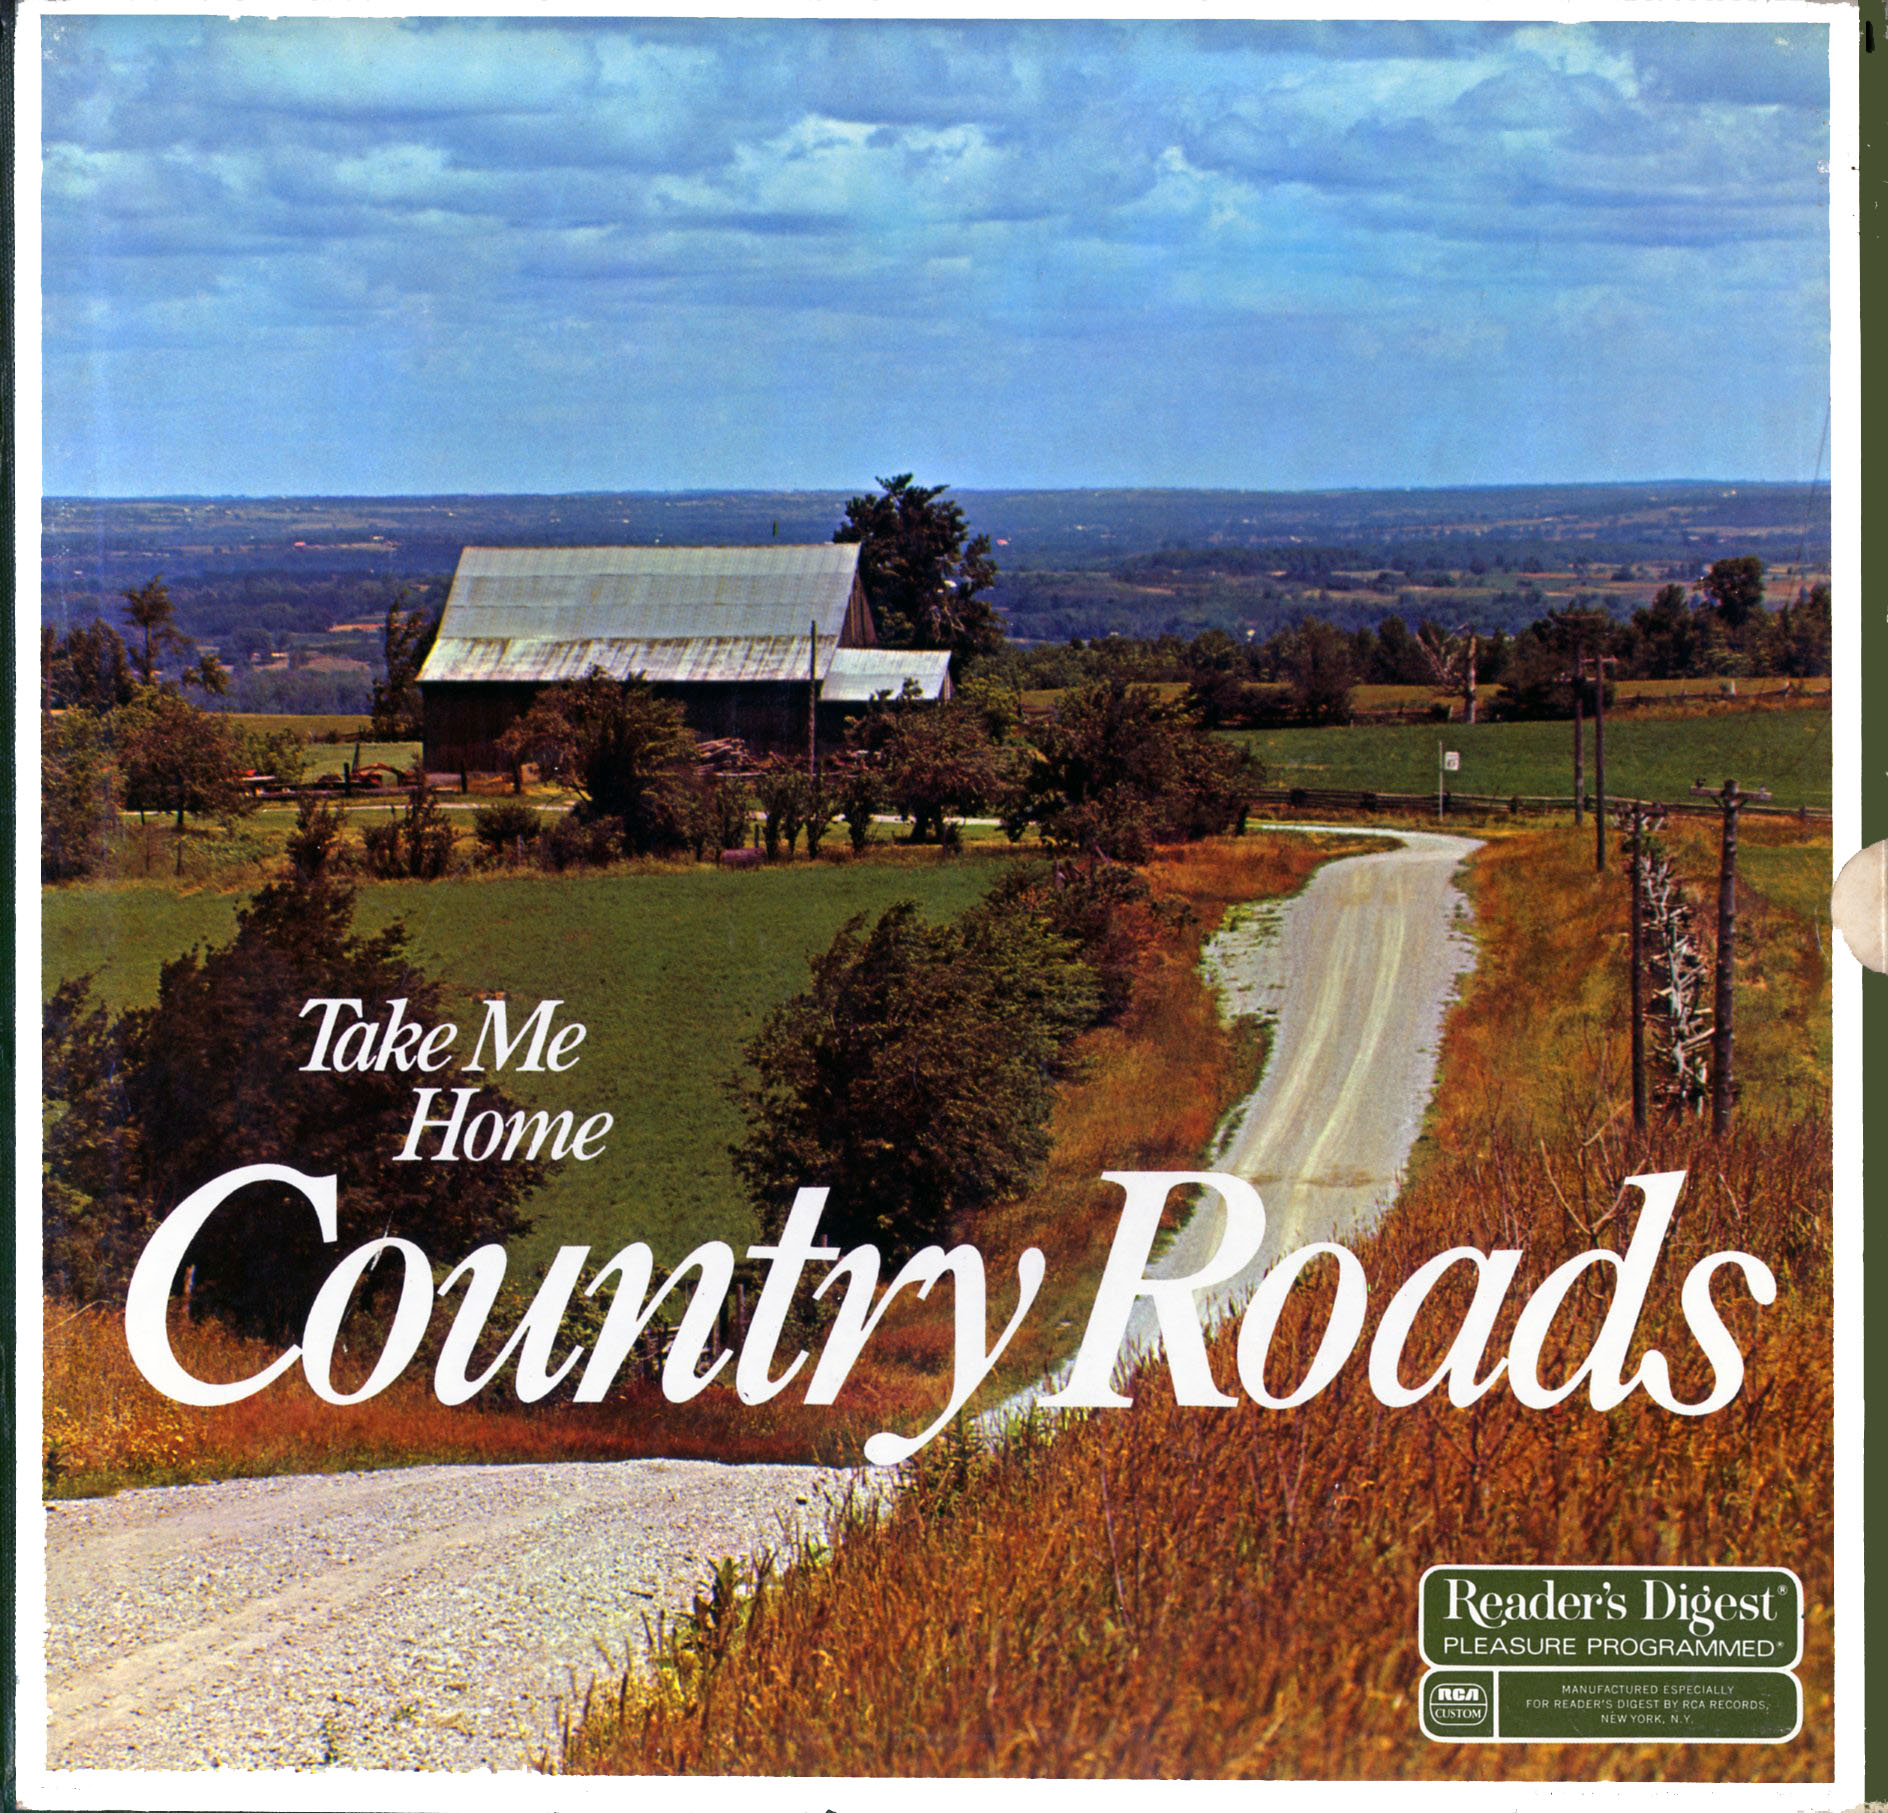 Take Me Home Country Roads Readers Digest Rda142 Boxed